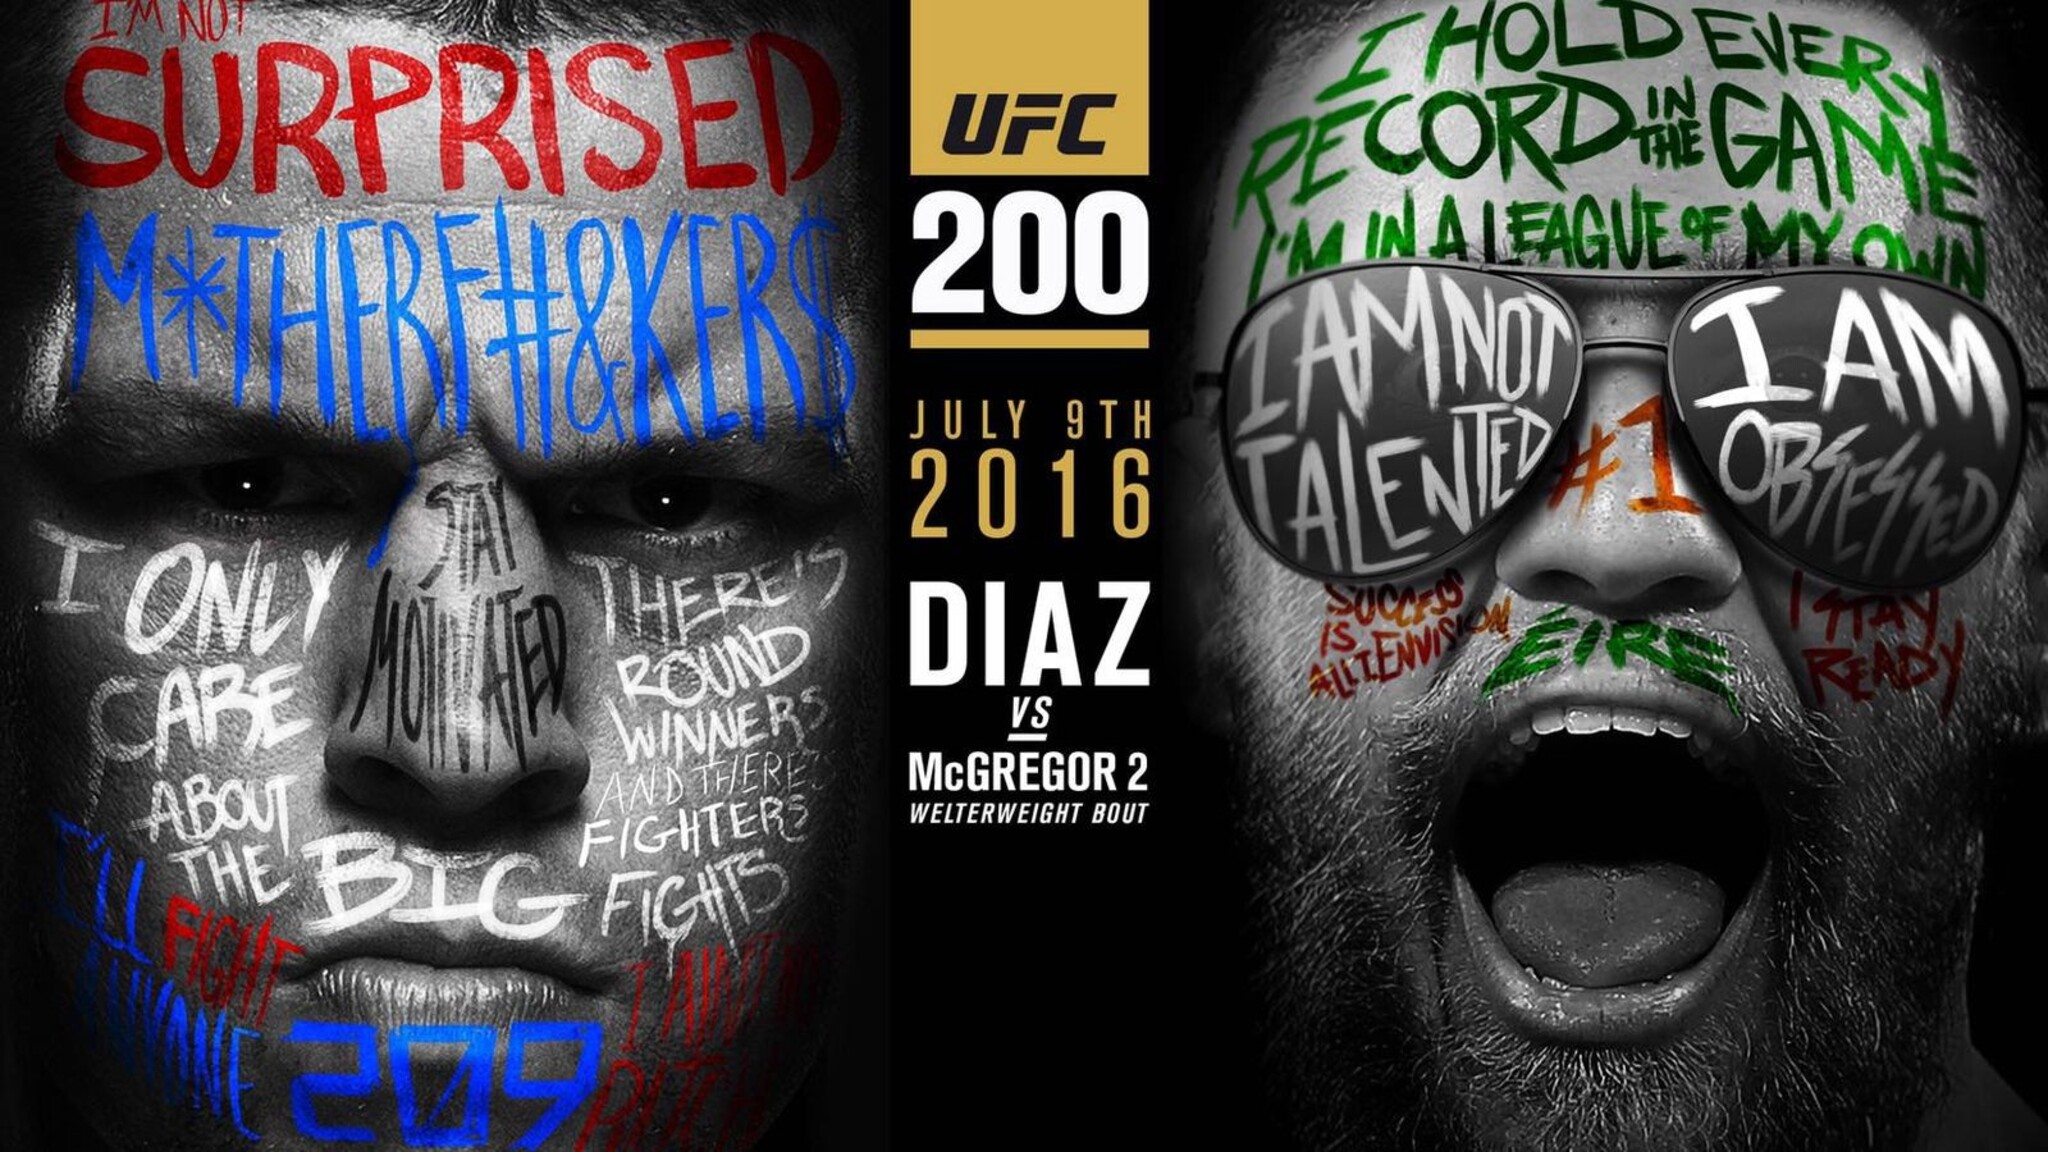 2048x1152 ufc 2048x1152 resolution hd 4k wallpapers images ufc 4kg voltagebd Image collections